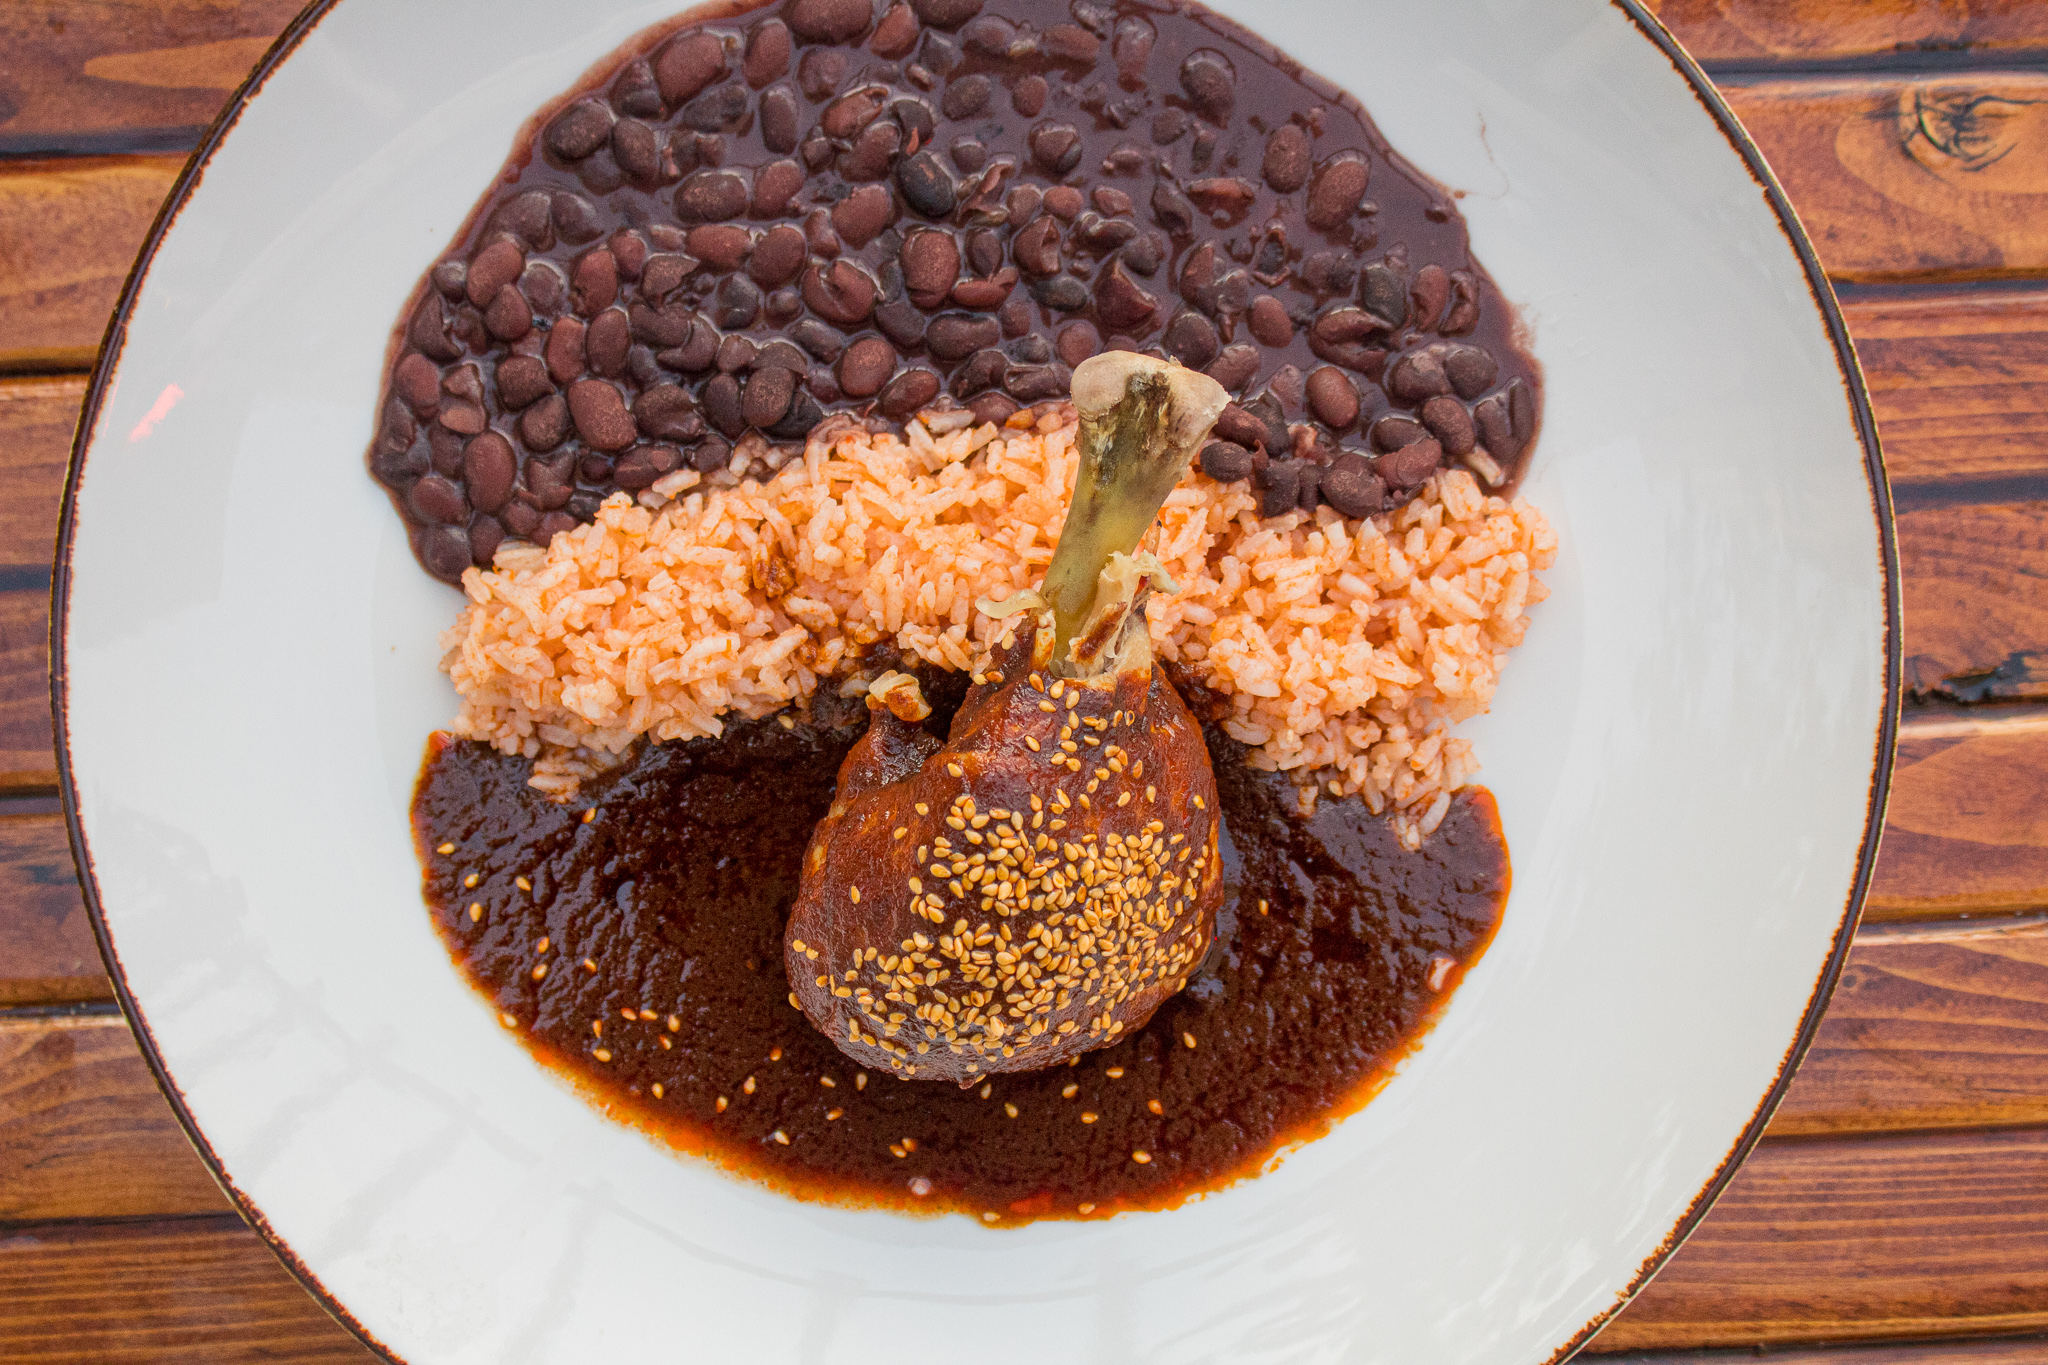 Pollo con Mole Poblano - Slow Cooked Chicken Leg with Red Rice, Beans, Mole Sauce, Sesame Seeds & Corn Tortillas